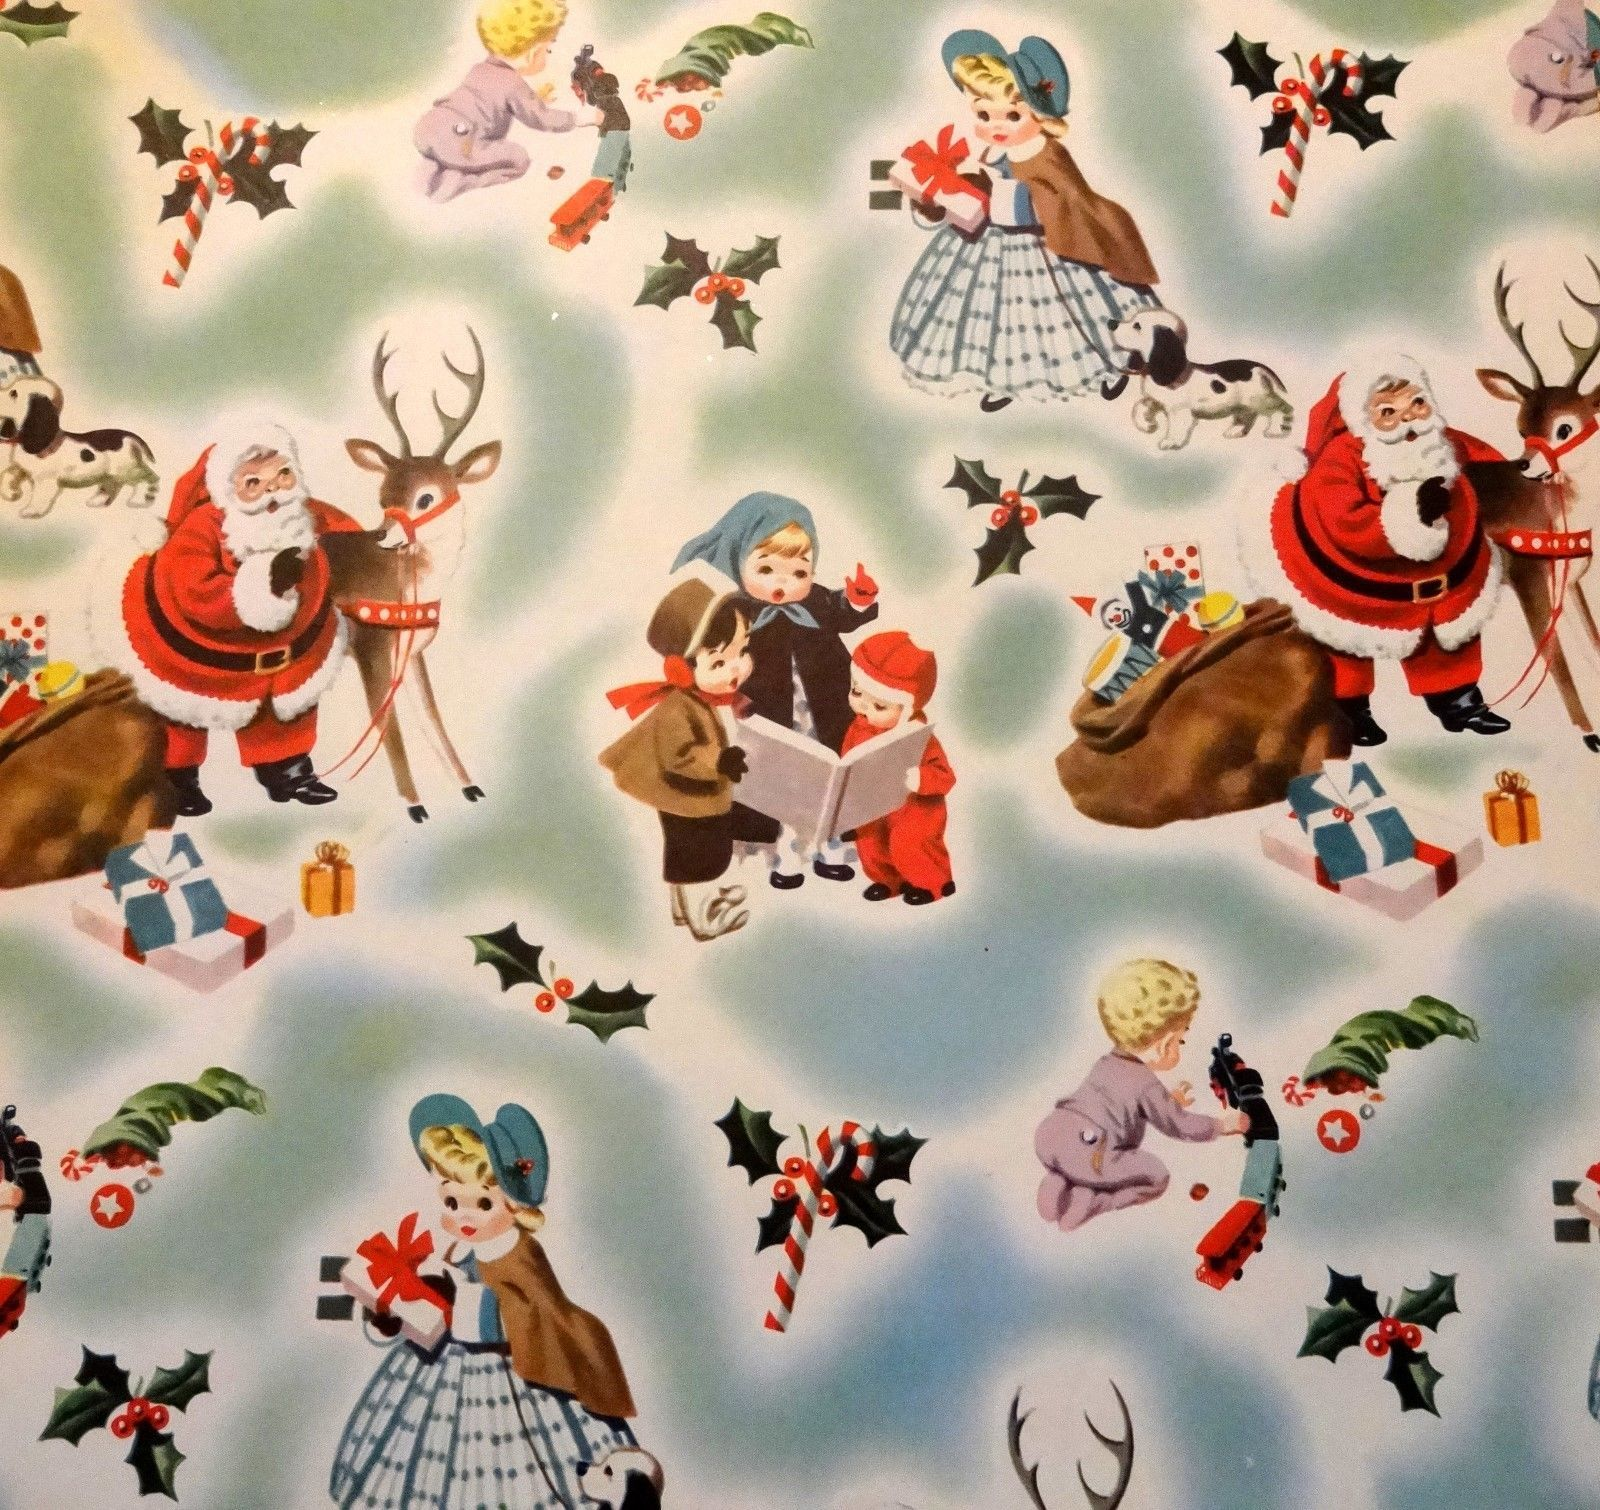 4 Yards 1950s Holly Vintage Wrapping Paper Red Green Traditional Christmas Gift Wrap Kitsch Retro Holiday Graphic Craft Scrapbooking 12 Feet